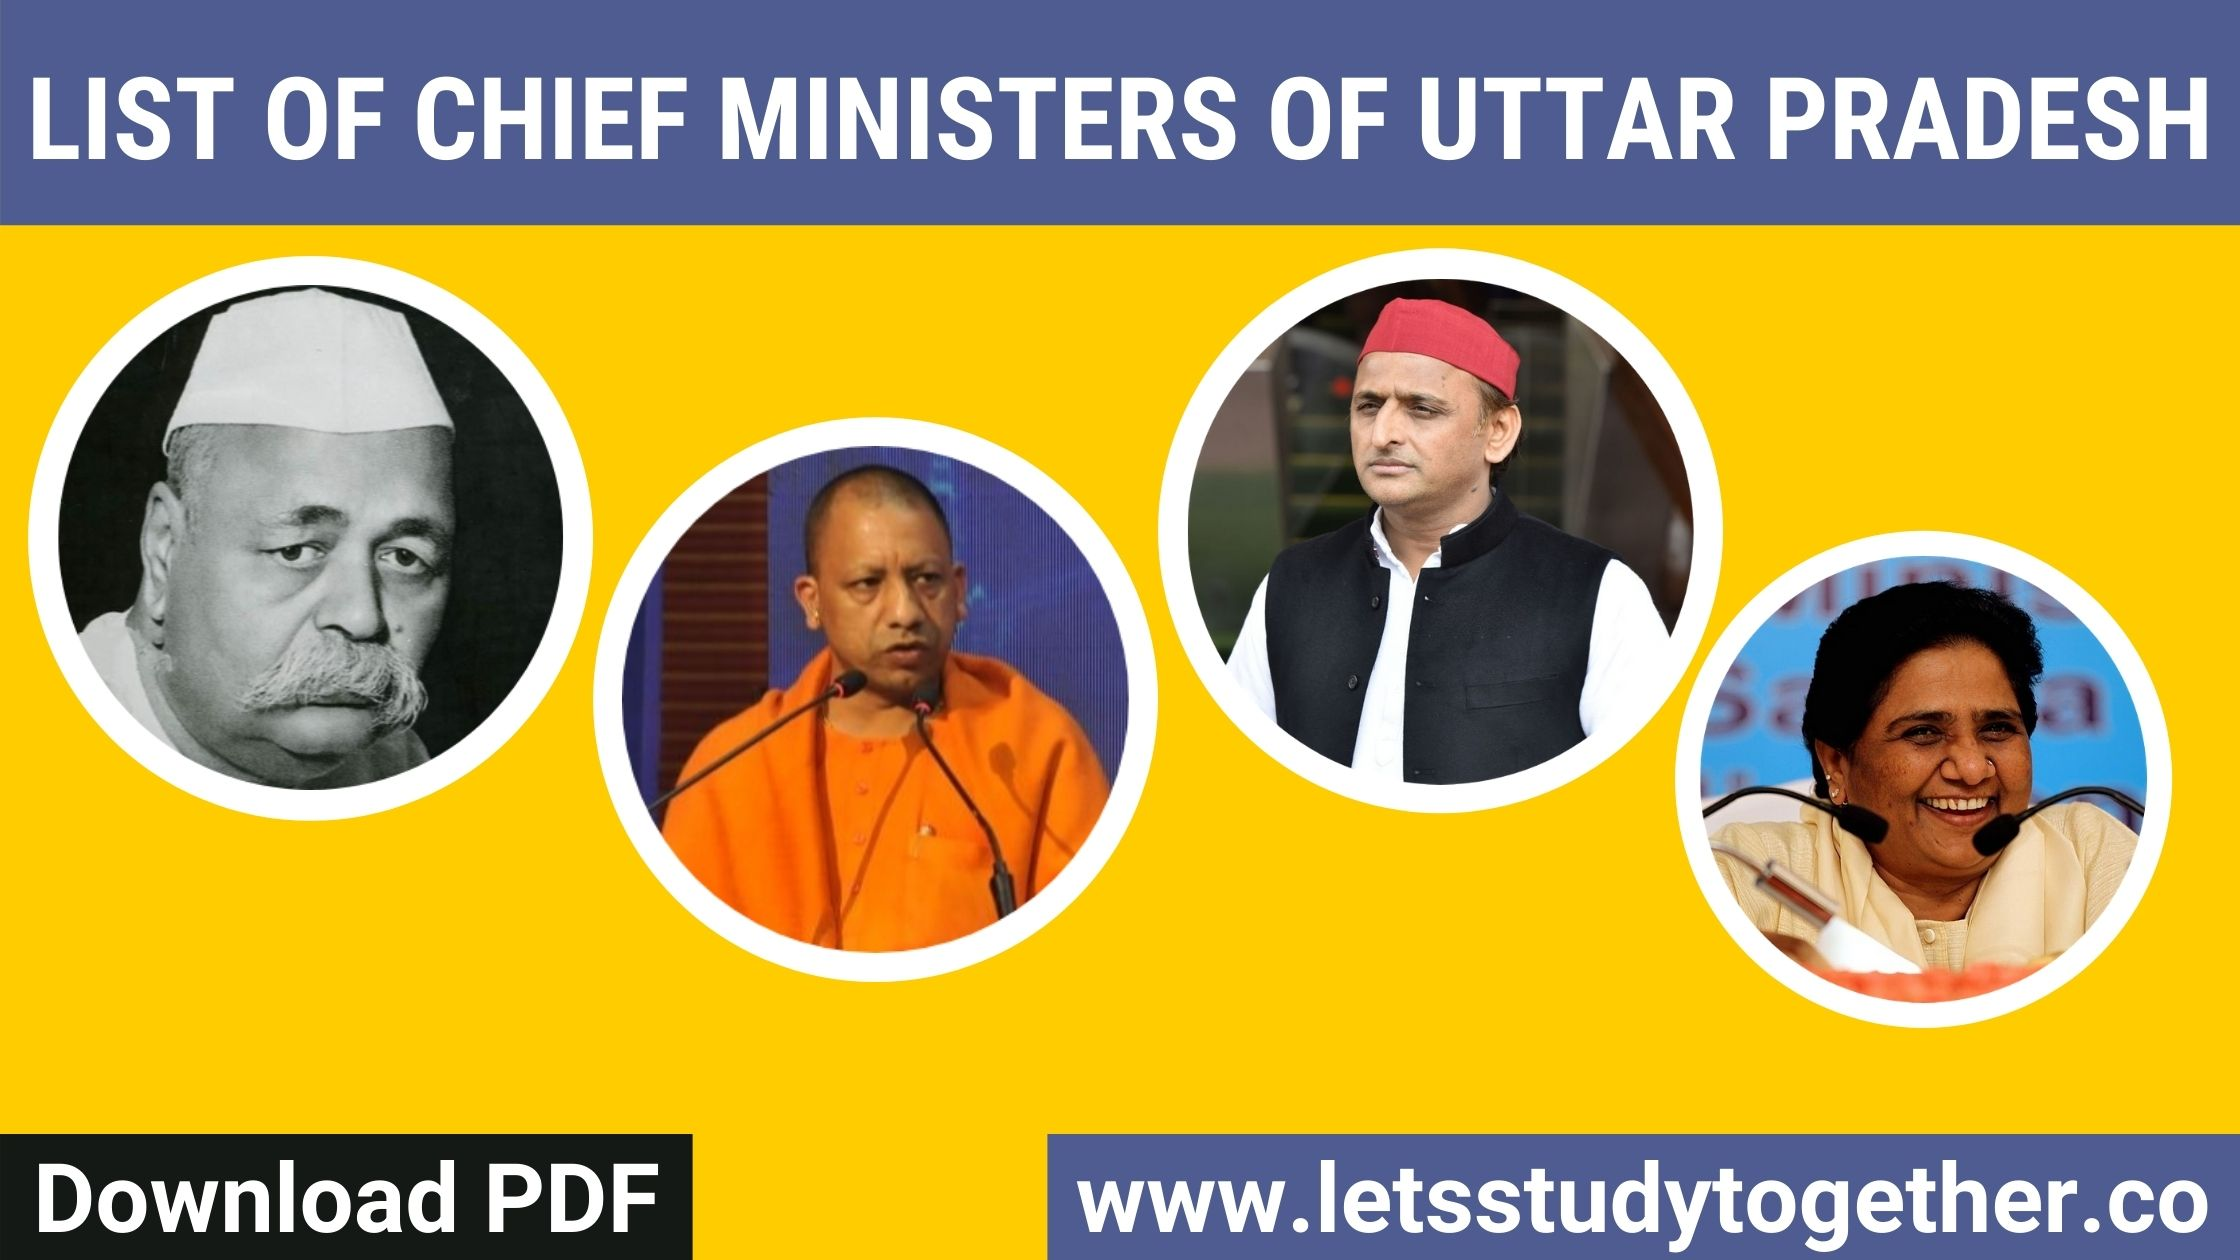 List of Chief Ministers of Uttar Pradesh - Download PDF